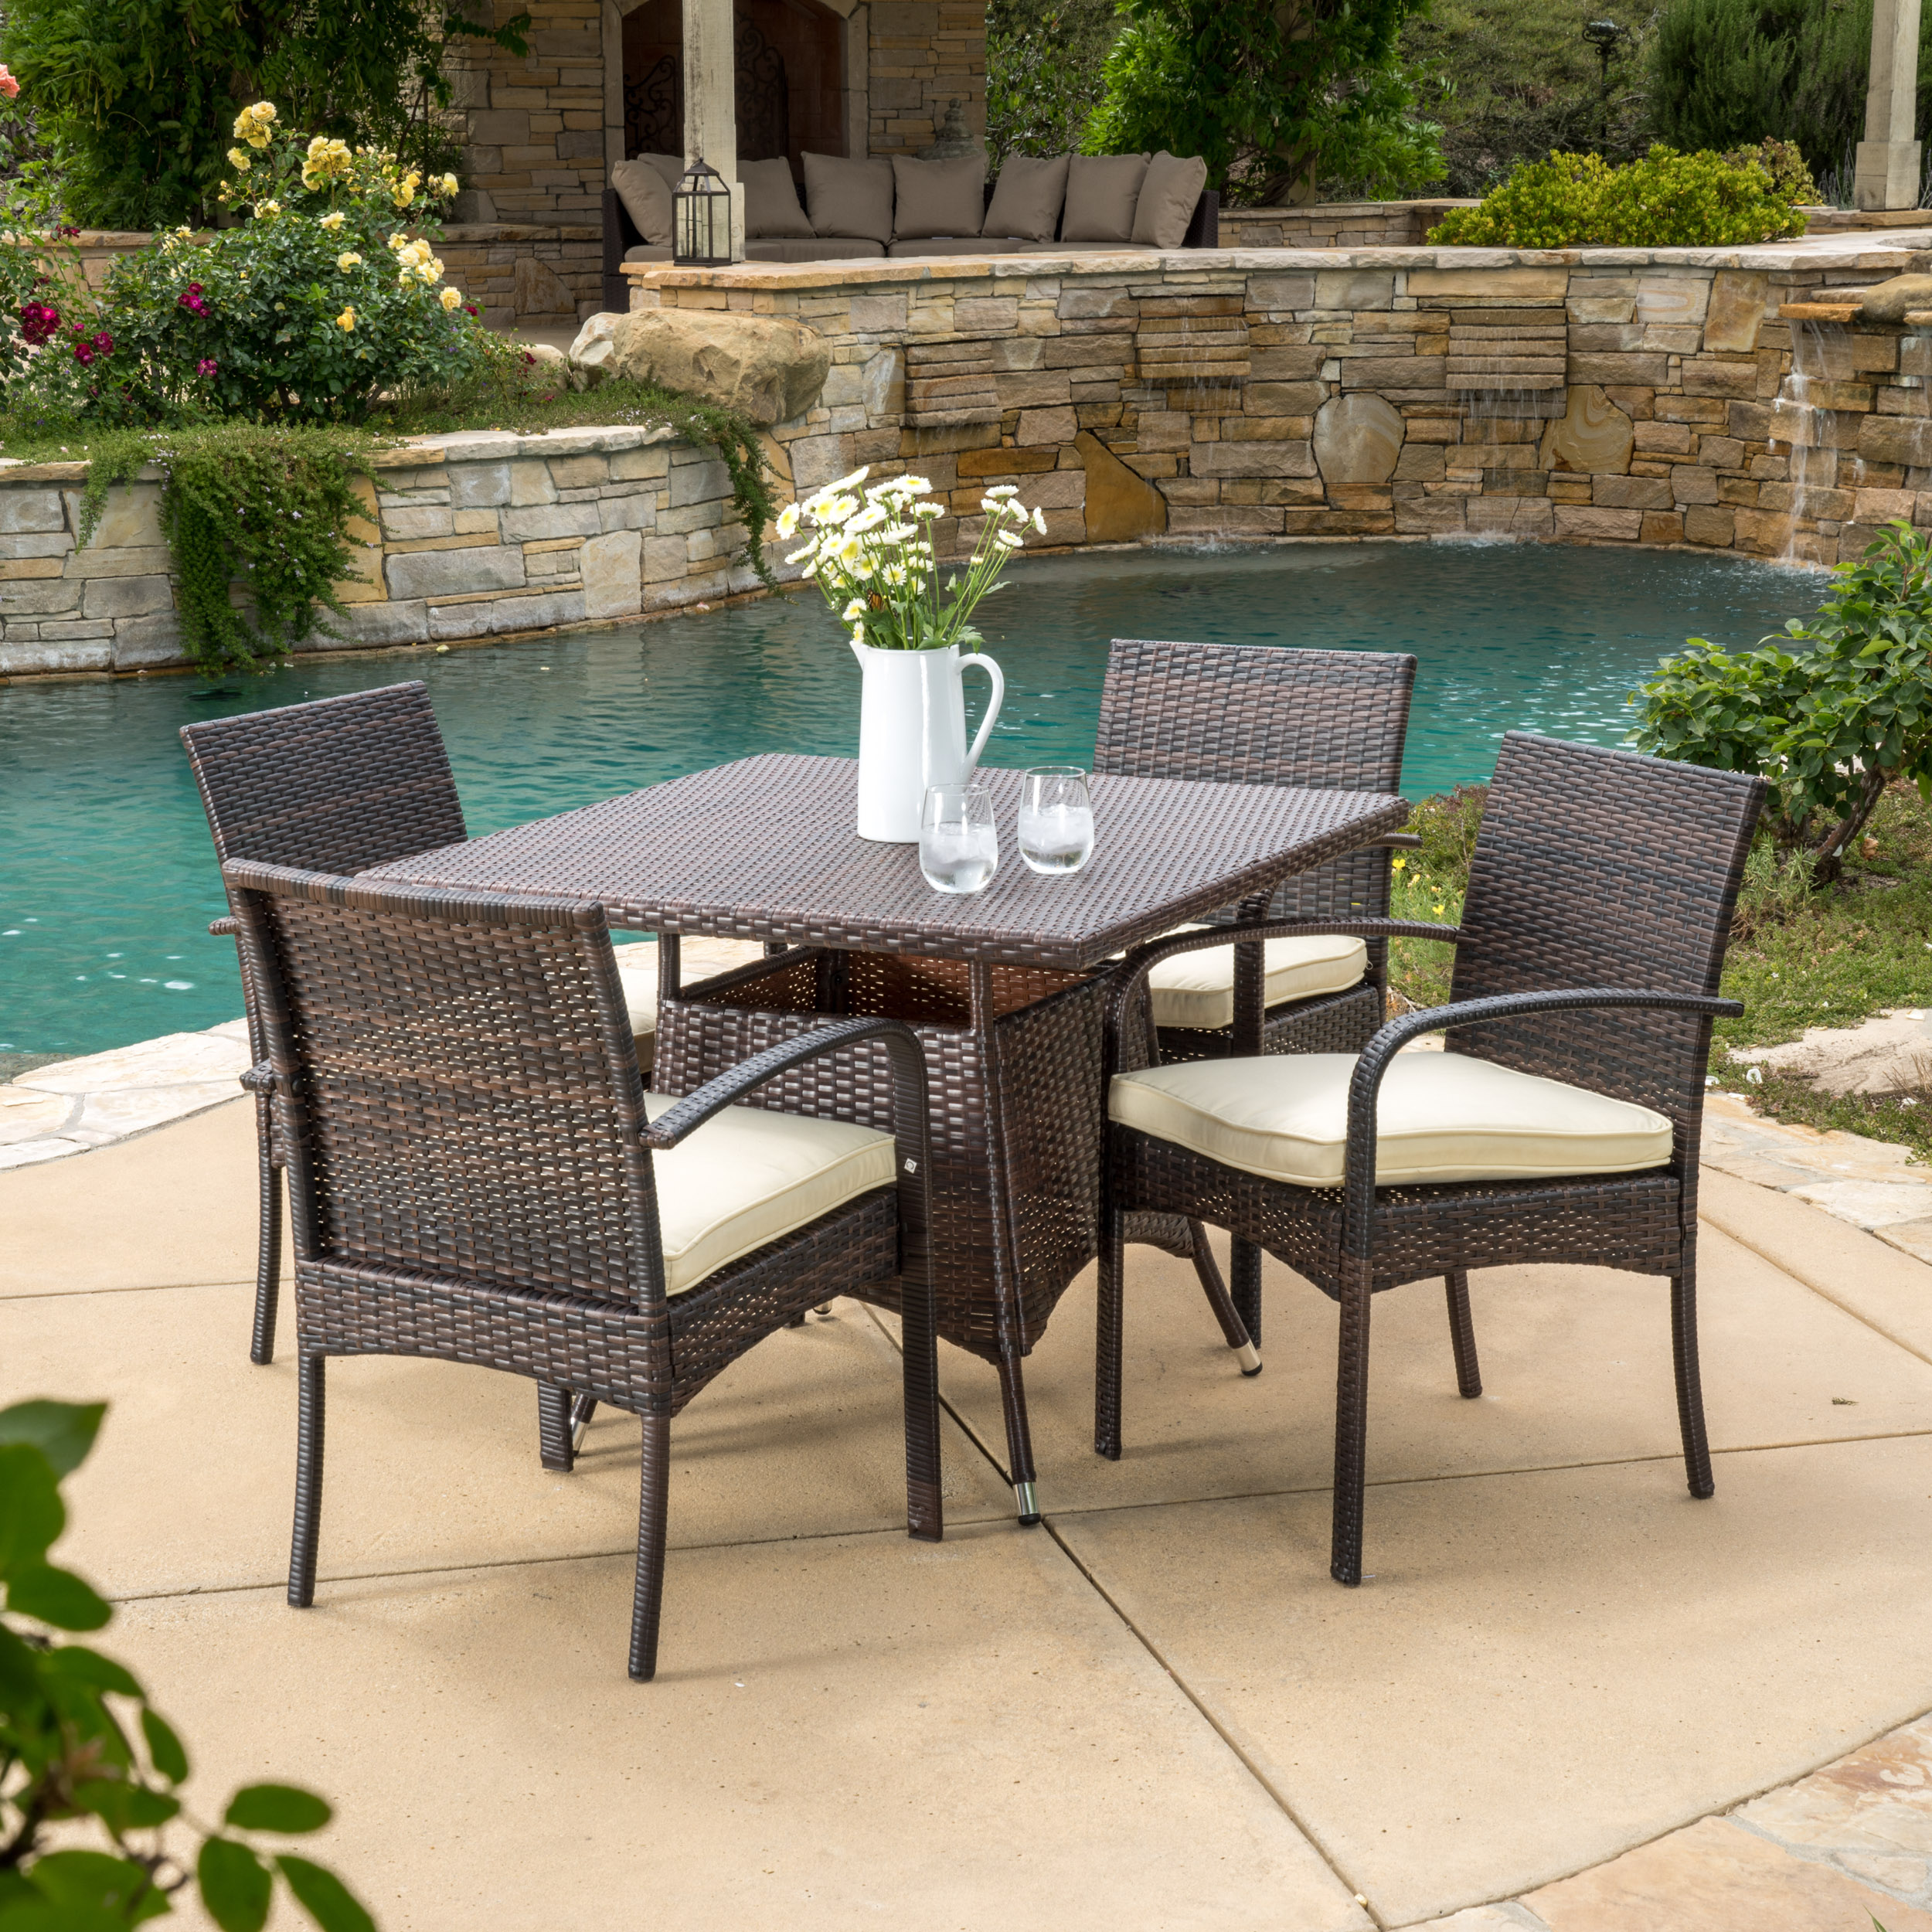 Rosario 5 Piece Outdoor Square Wicker Dining Set, Multibrown